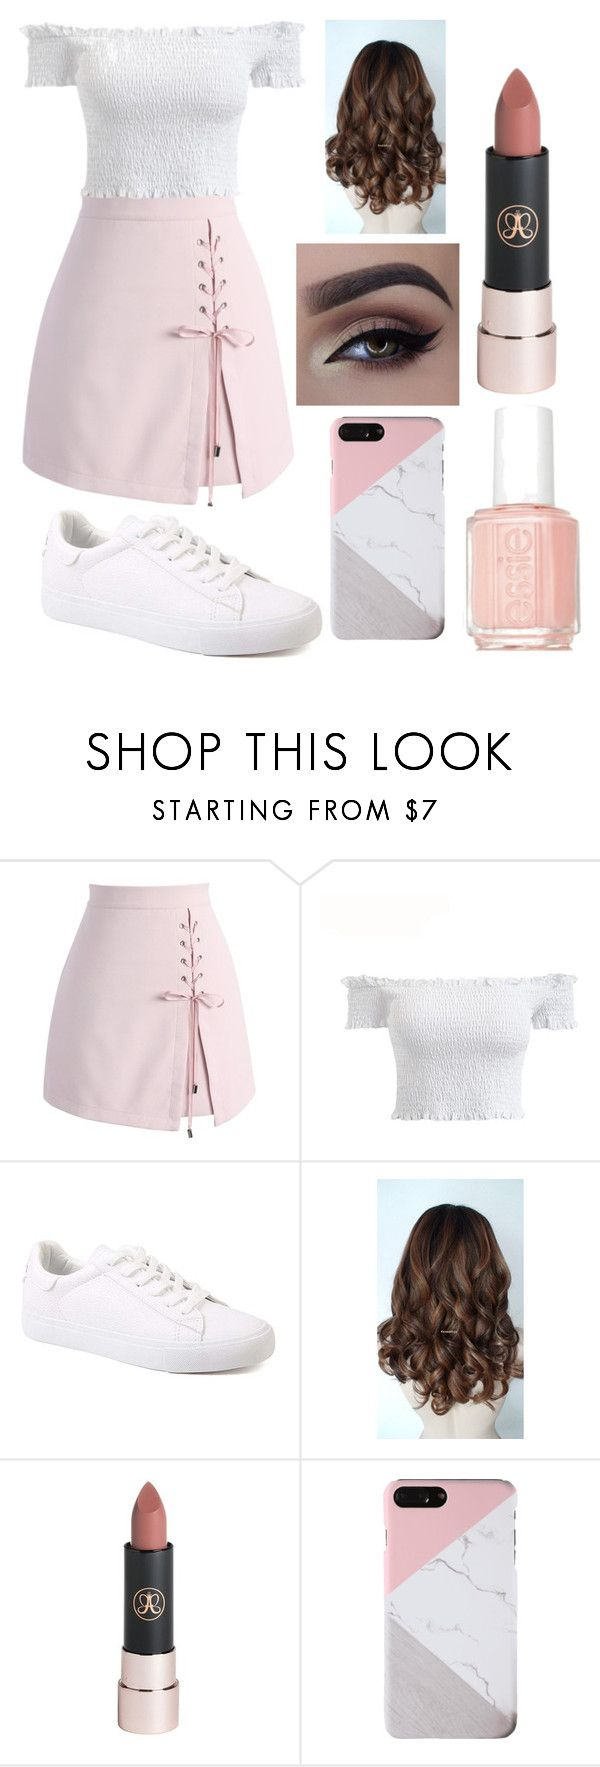 """Untitled #77"" by magali03garcia on Polyvore featuring Chicwish, Anastasia Beverly Hills and Essie"